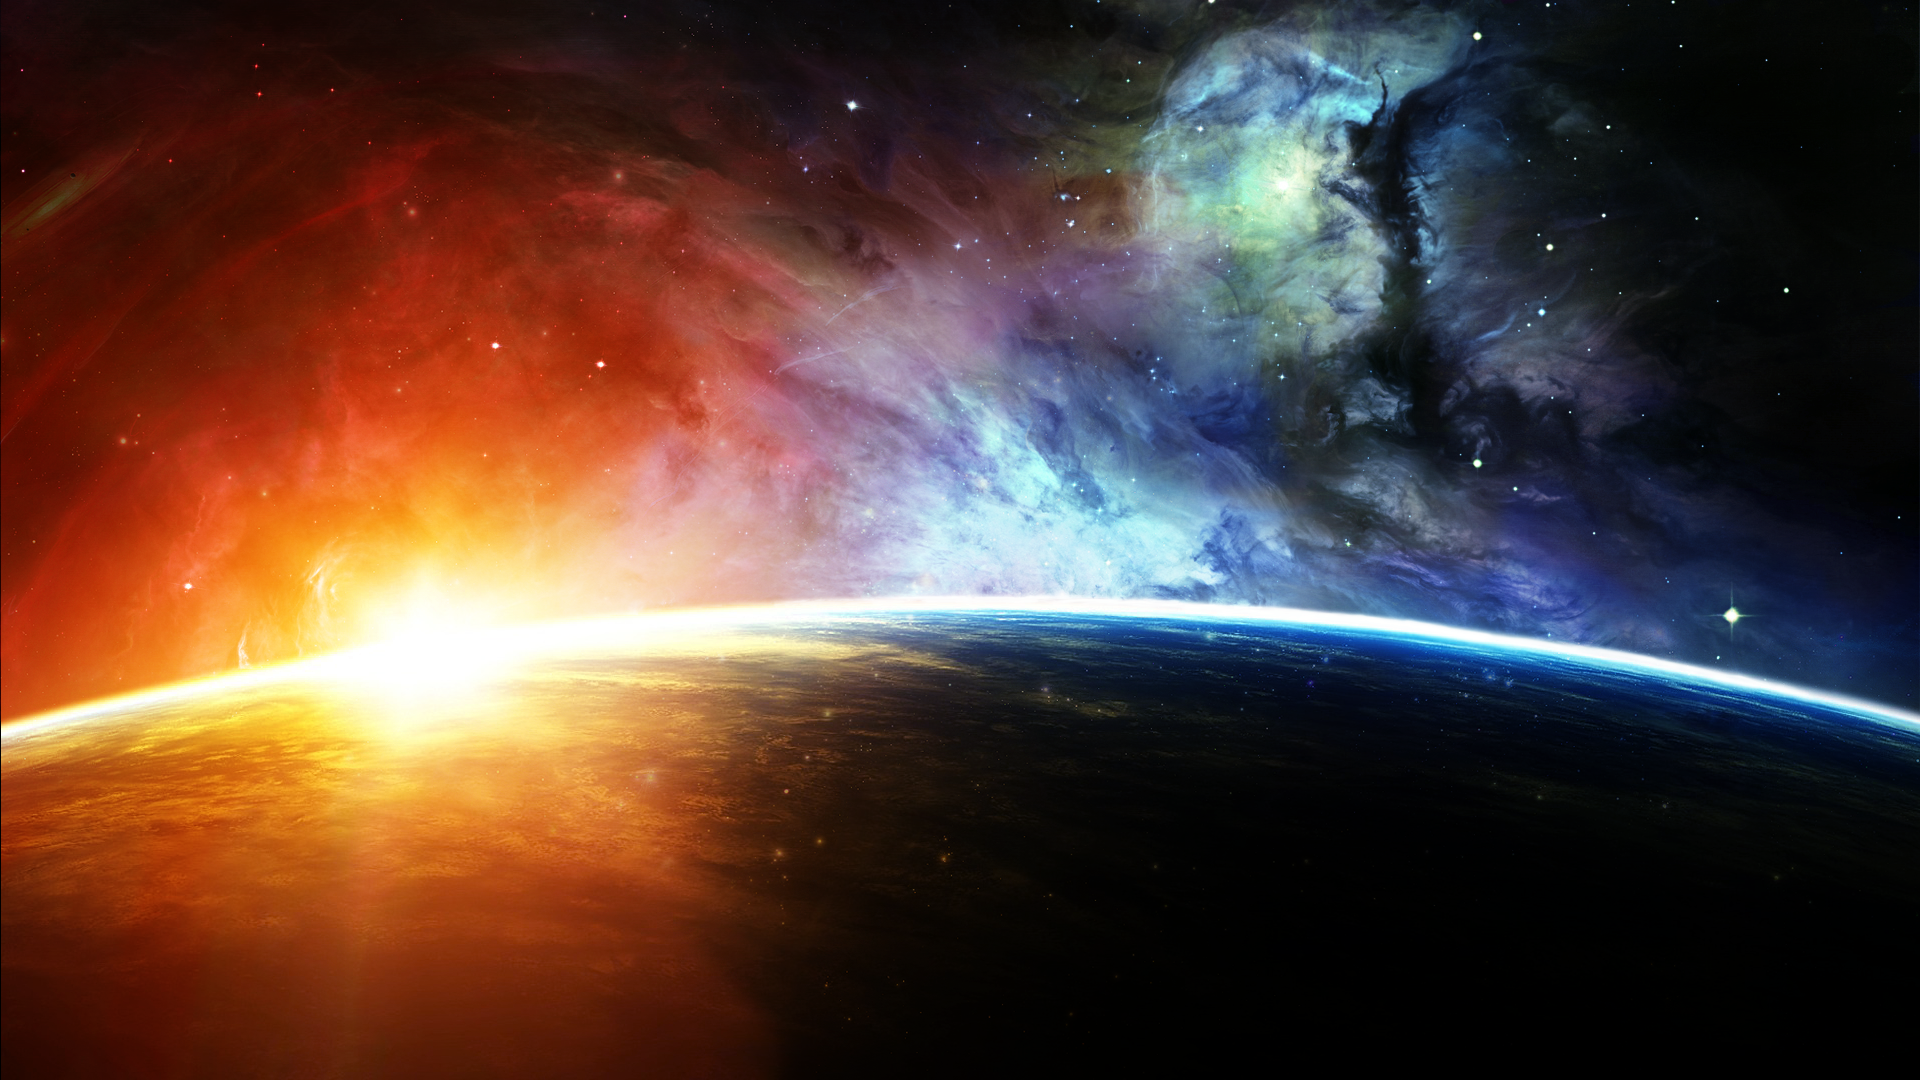 space desktop wallpaper backgrounds - photo #11